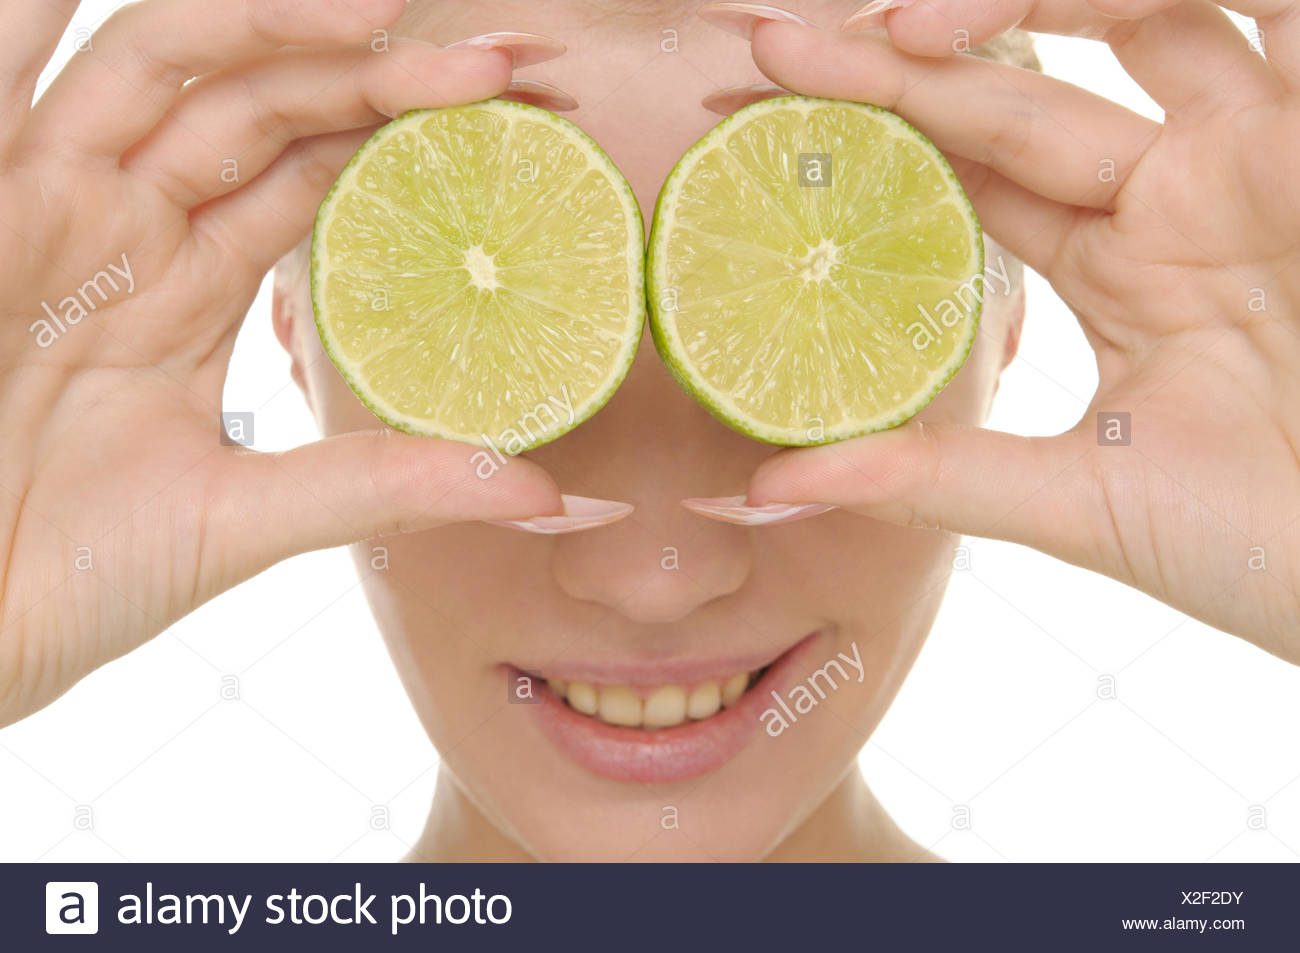 Young woman holds halves of lime before eyes Stock Photo